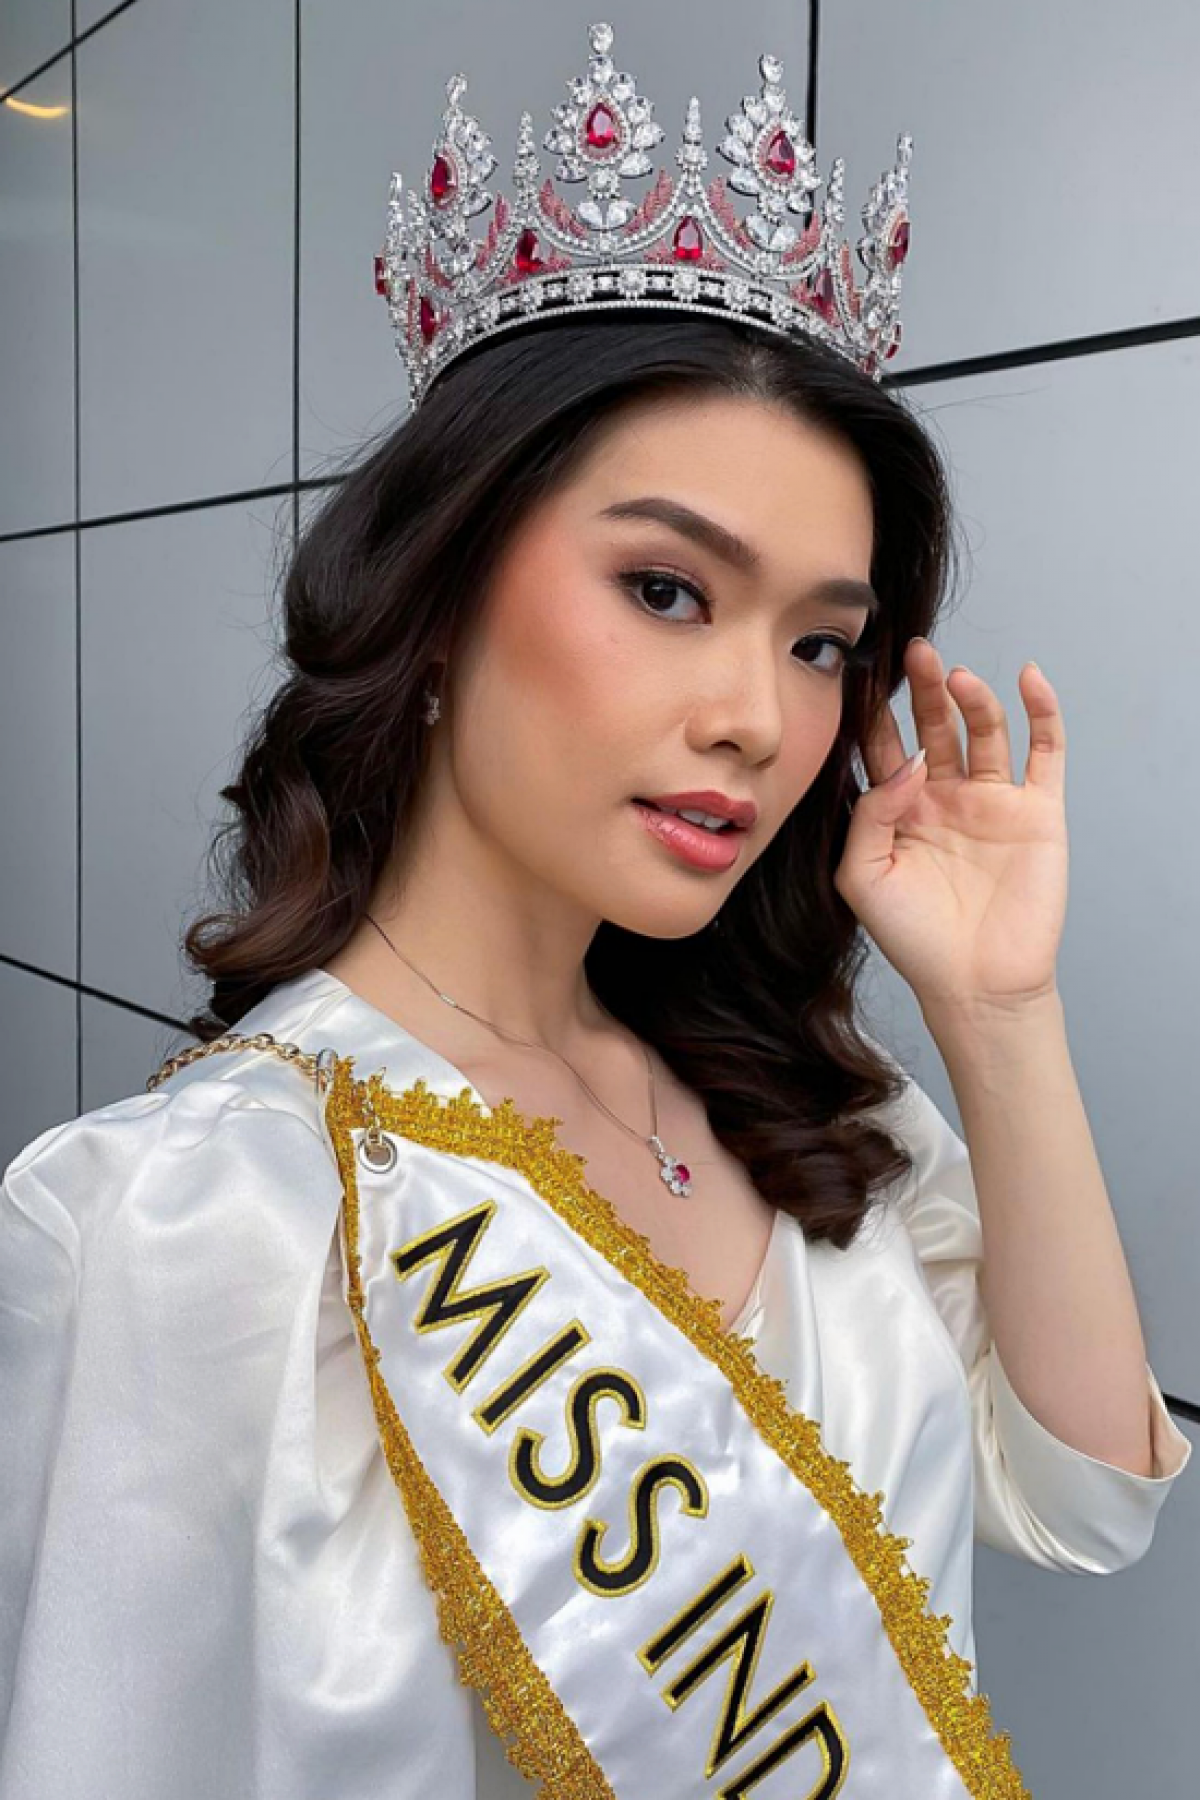 Elsewhere in the global pageant, highly-rated contestant Pricilia Carla Yules will be representing Indonesia. The beauty stands at 1.72-metres tall and graduated with a degree in hotel management from a university in Australia.